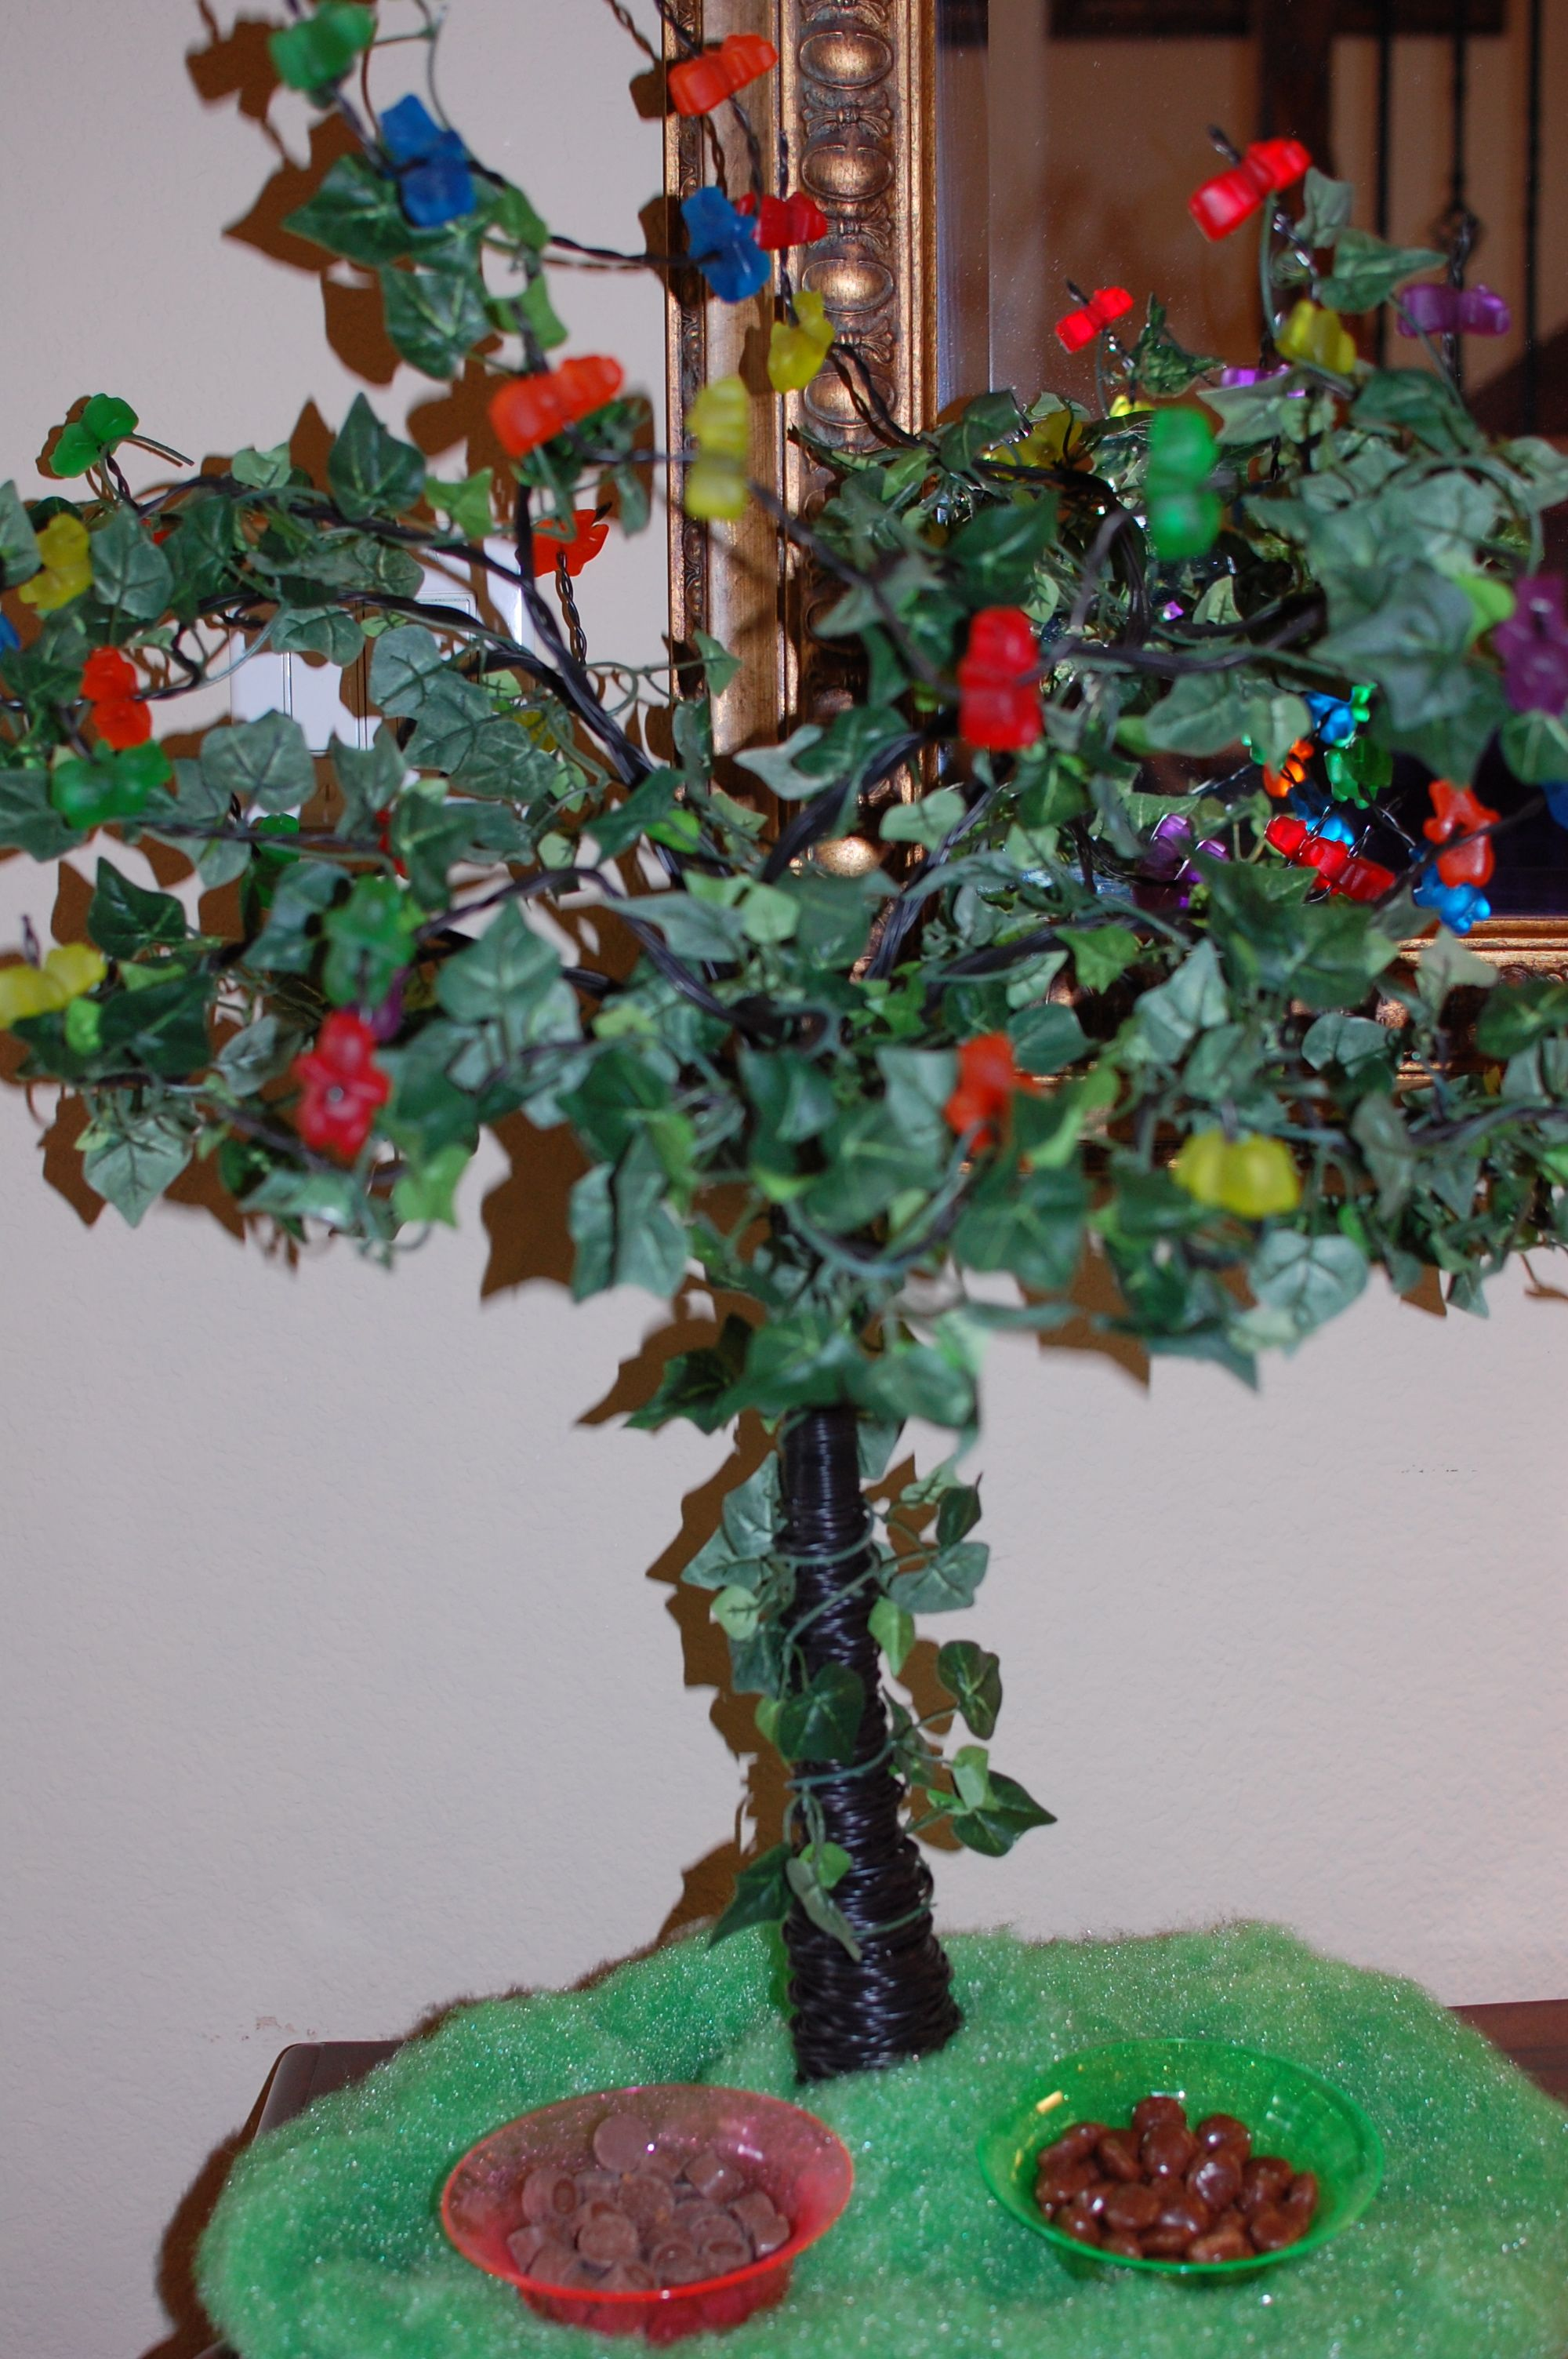 Gummy bear tree for wonka party was a wire tree purchased in gummy bear tree for wonka party was a wire tree purchased in canton just added the leaves and large gummy bears to make it look like one from the movie arubaitofo Image collections